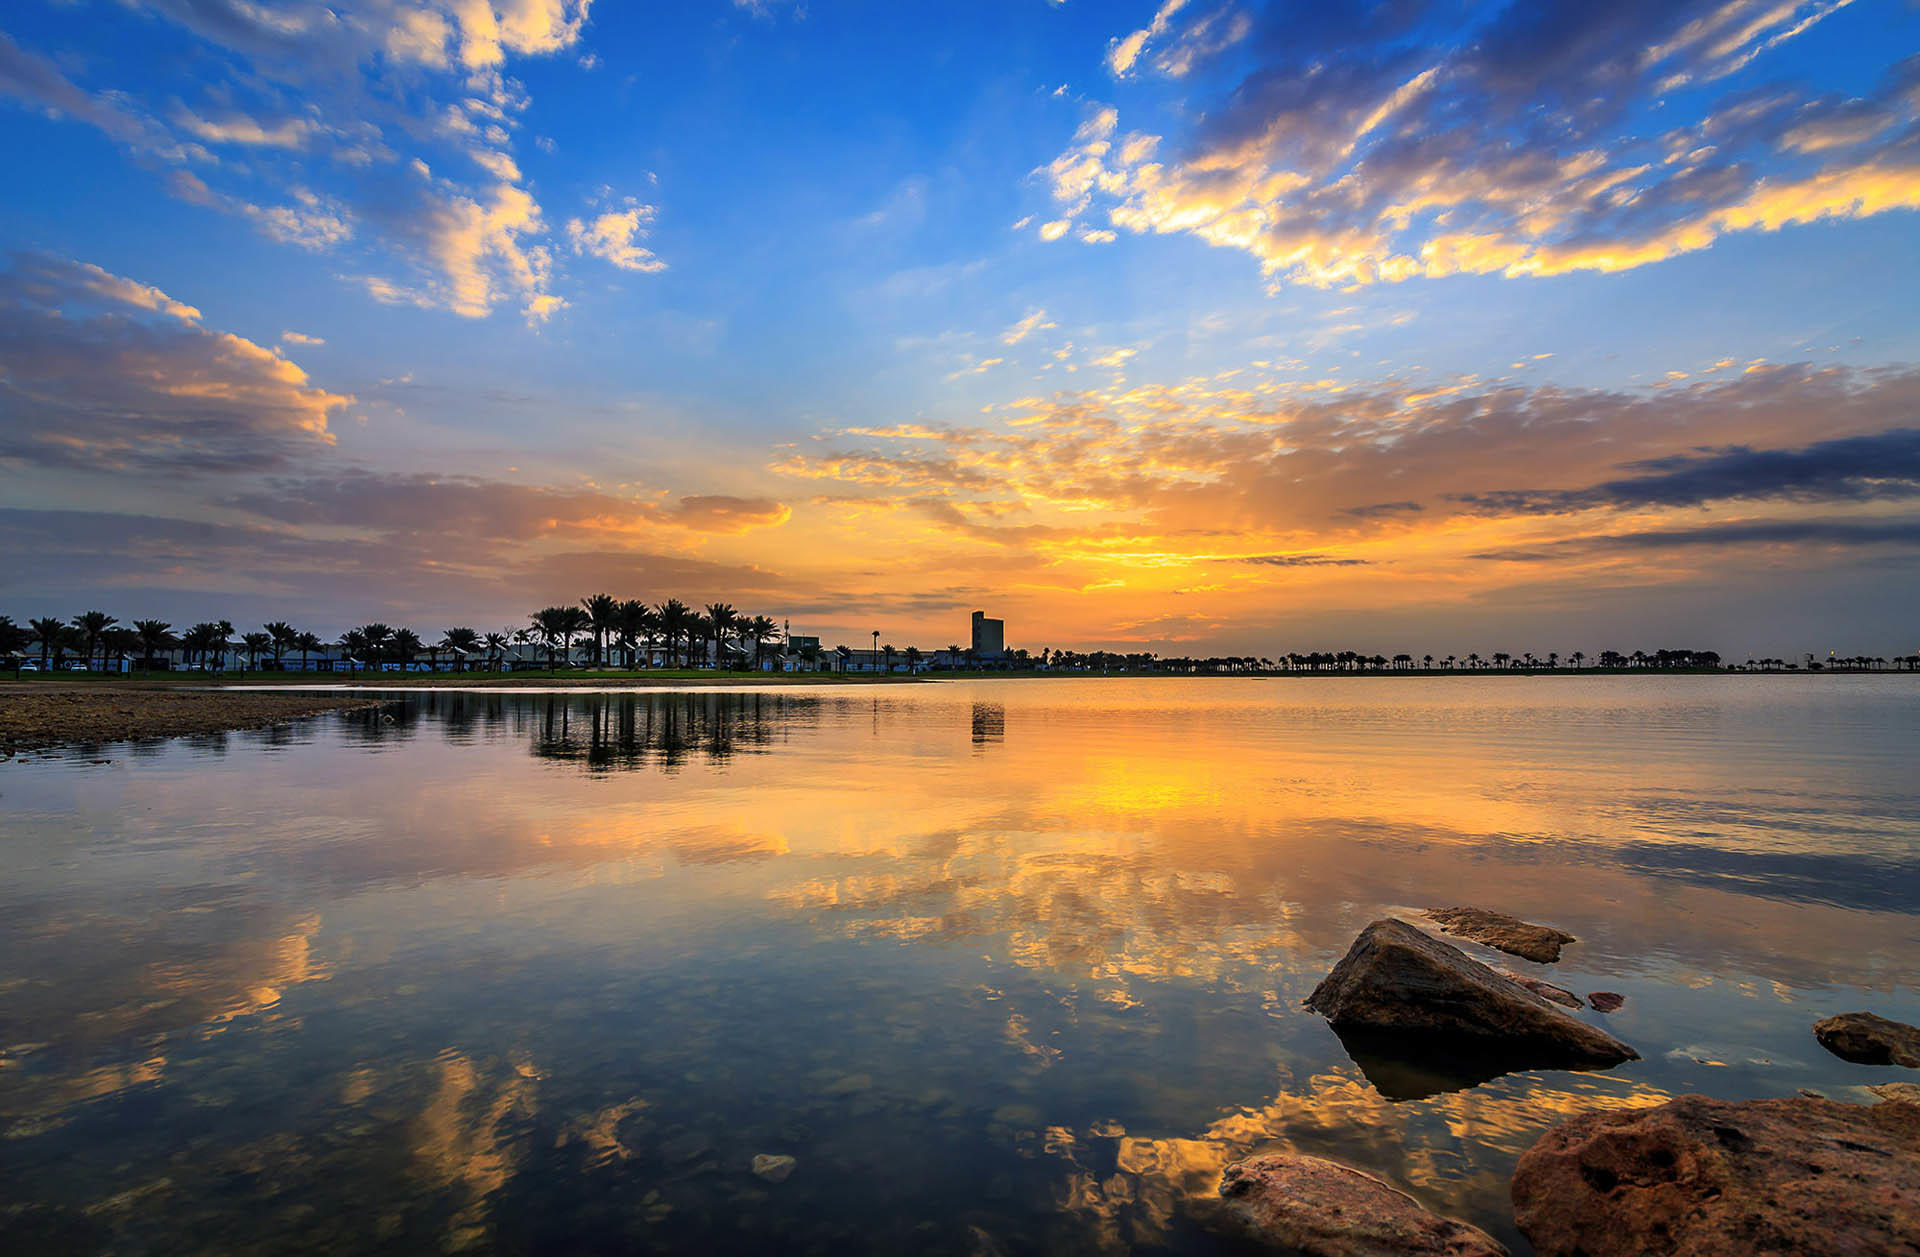 Sunrise view Modon Lake in Dammam